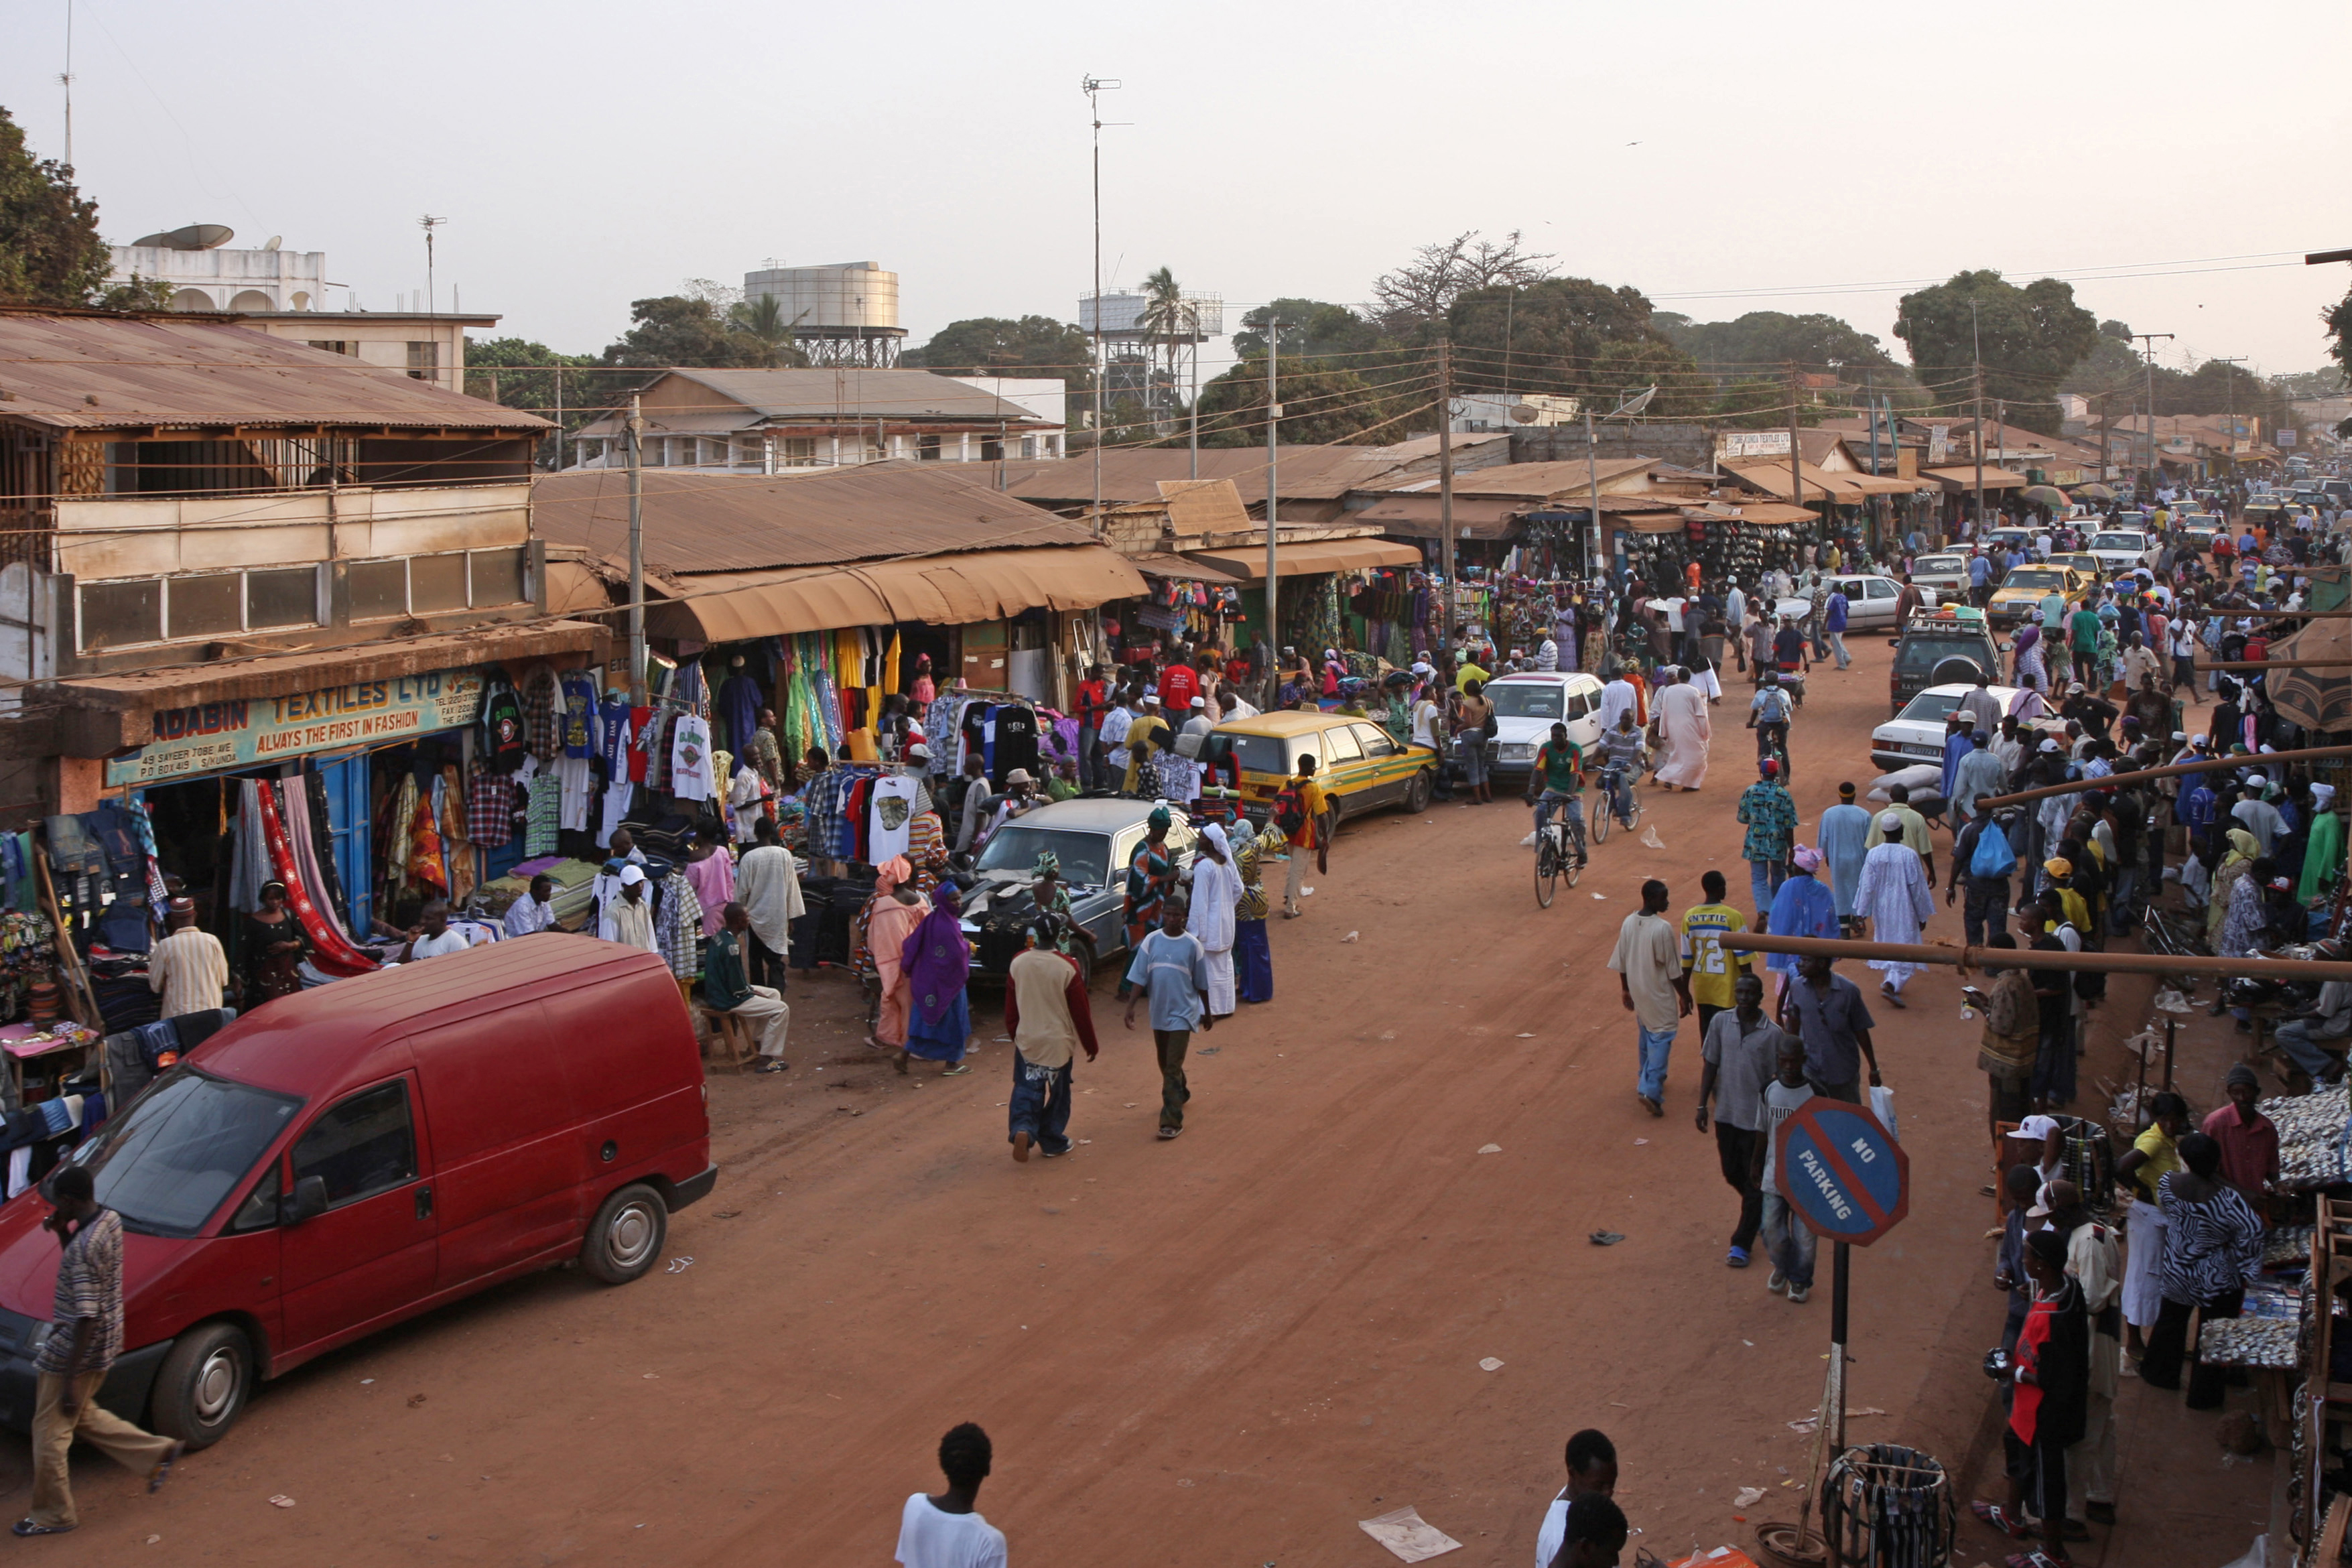 http://upload.wikimedia.org/wikipedia/commons/4/44/Serekunda_market.jpg